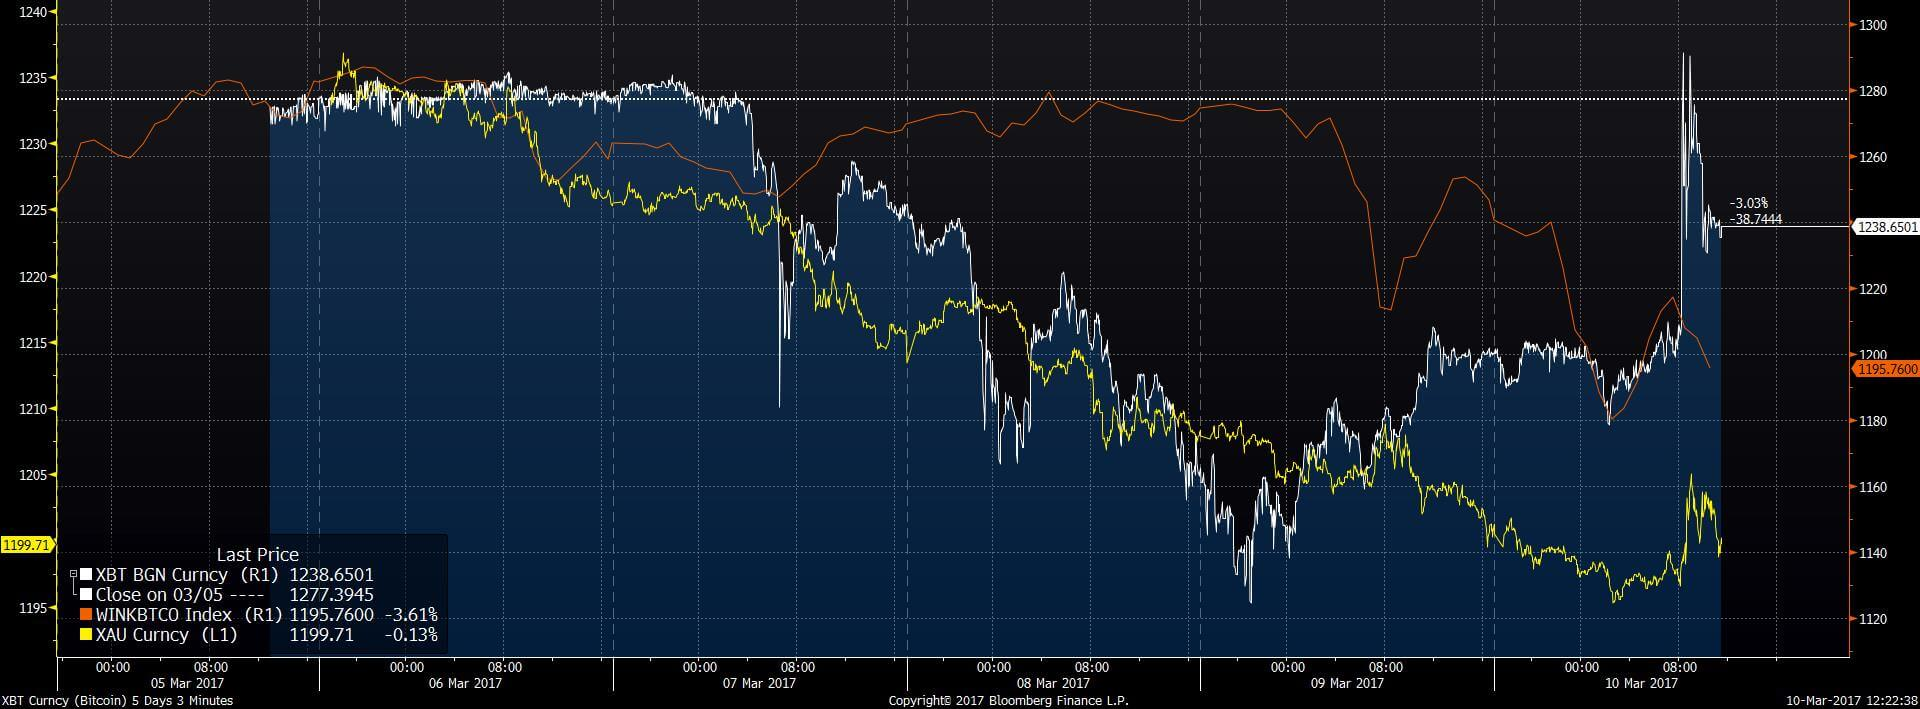 The price of bitcoin vs. the WinkDex vs. gold, at three-minute intervals.